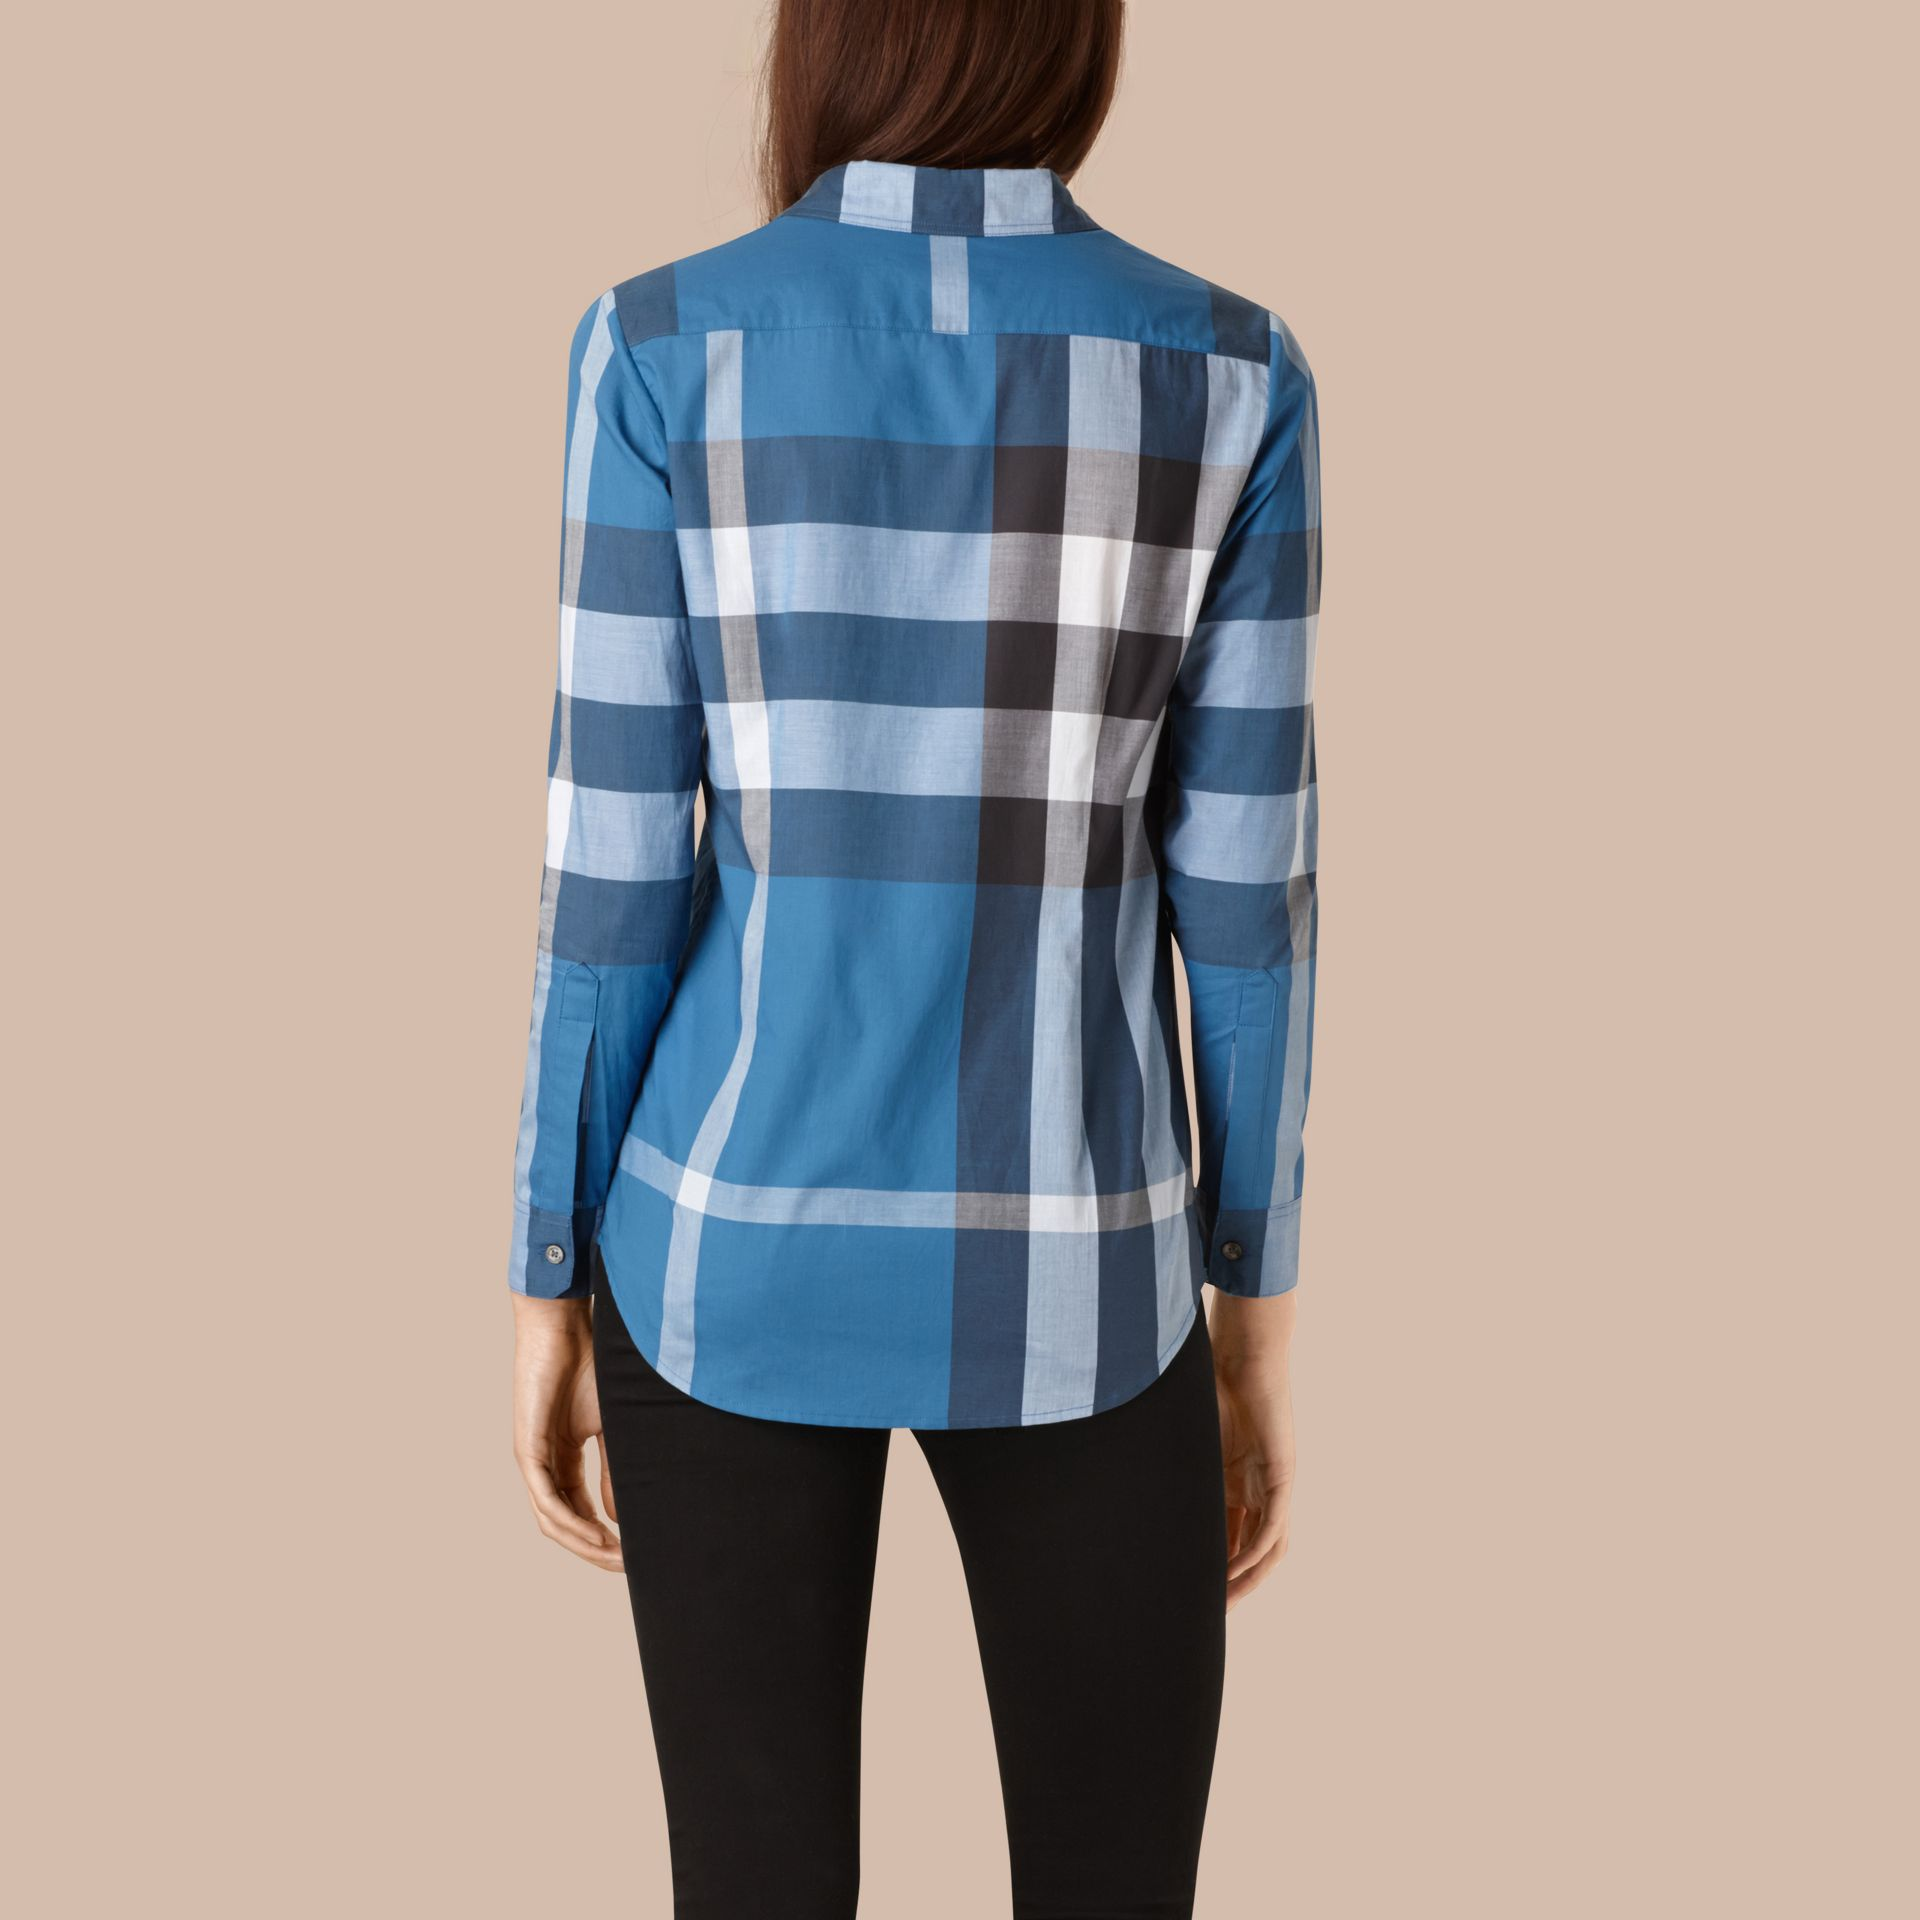 Lupin blue Check Cotton Shirt Lupin Blue - gallery image 2